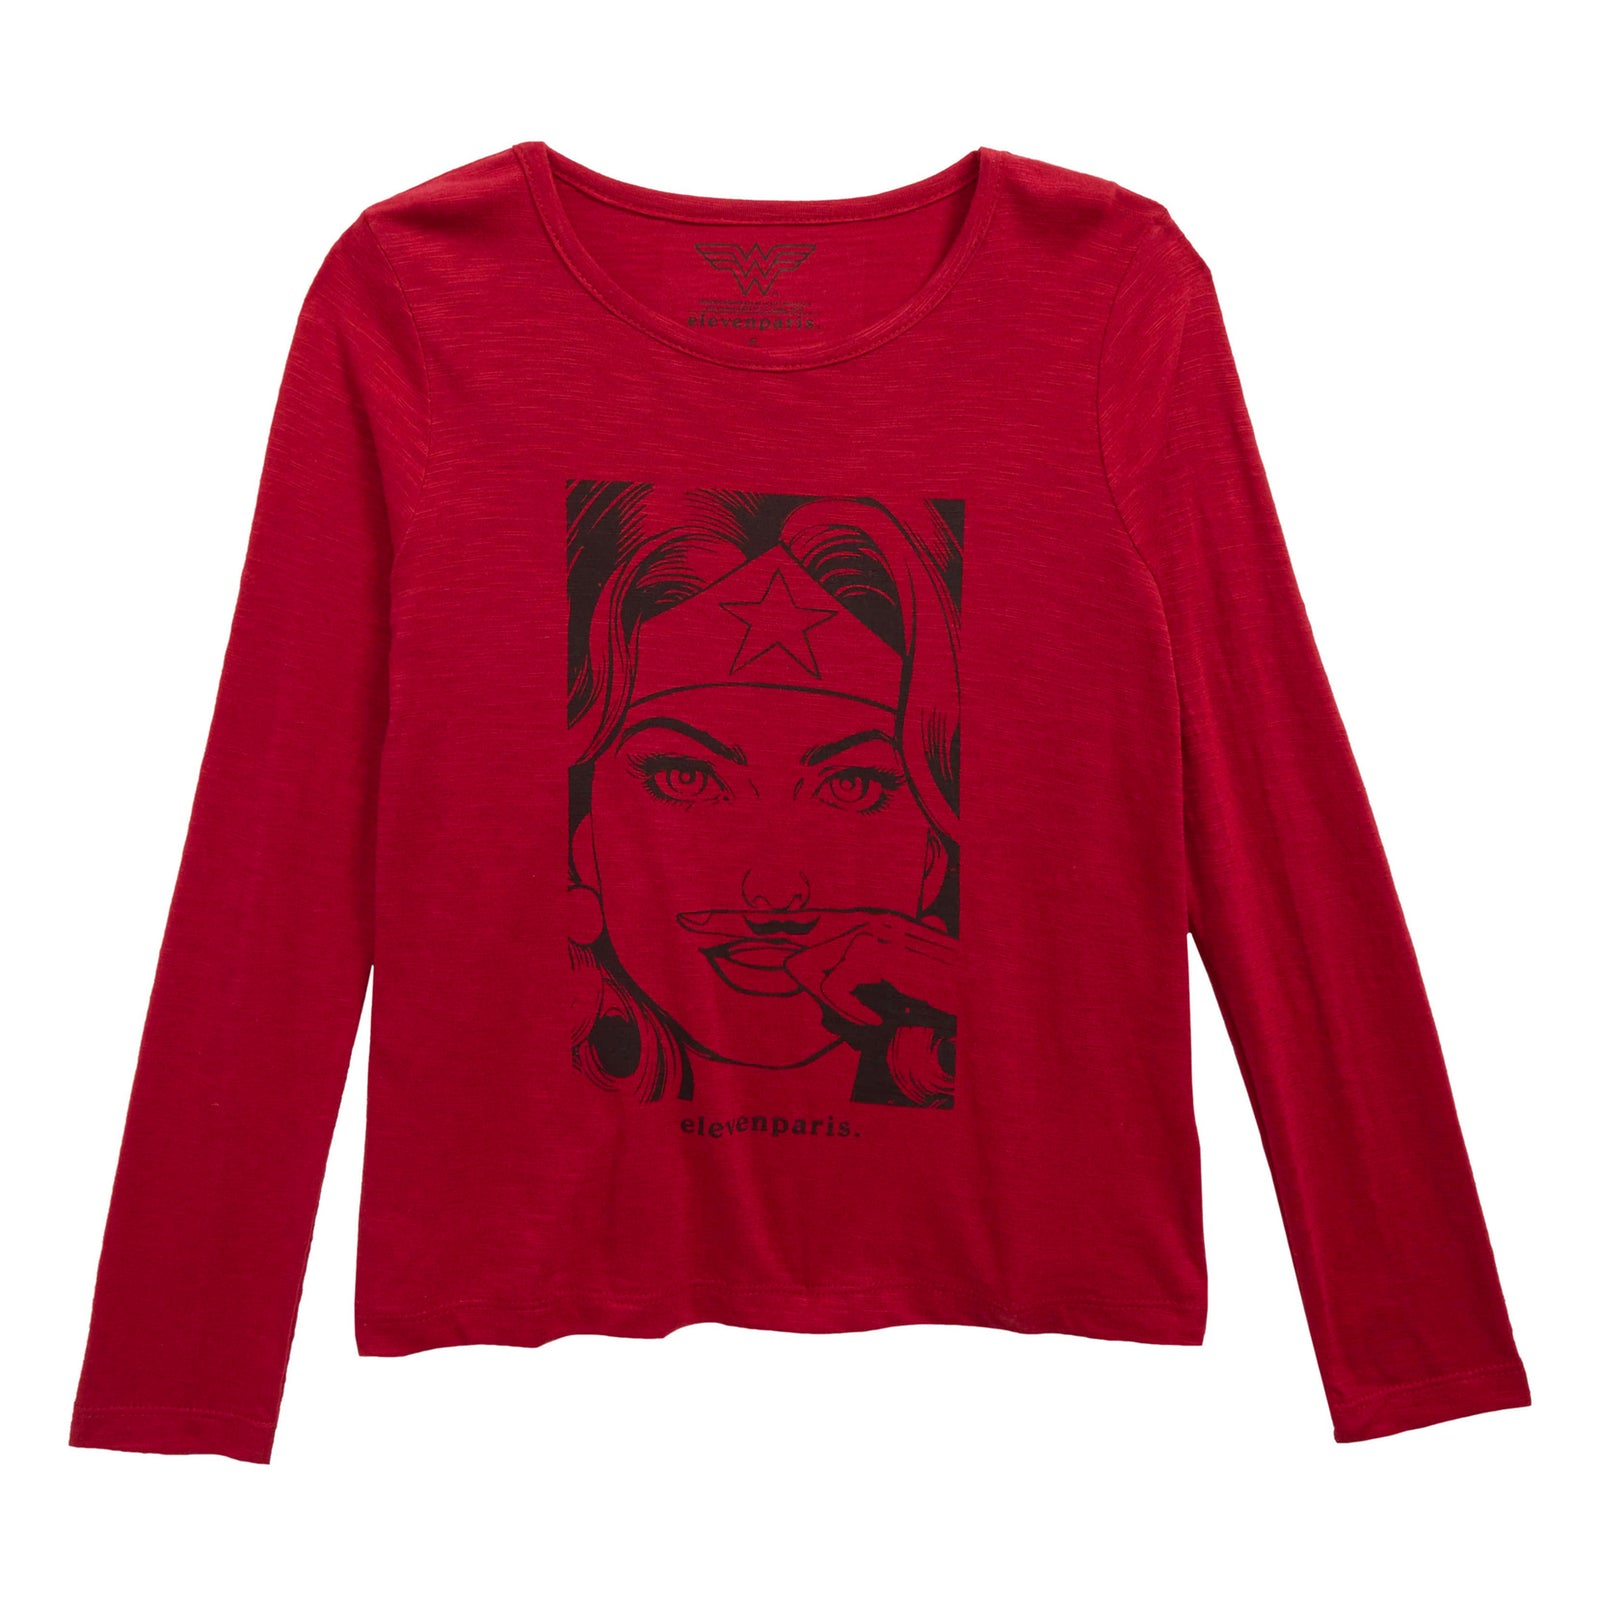 bfeb2bfbd Eleven Paris Girls Red 'WonderWoman' Long-Sleeved T-shirt – Petit New York